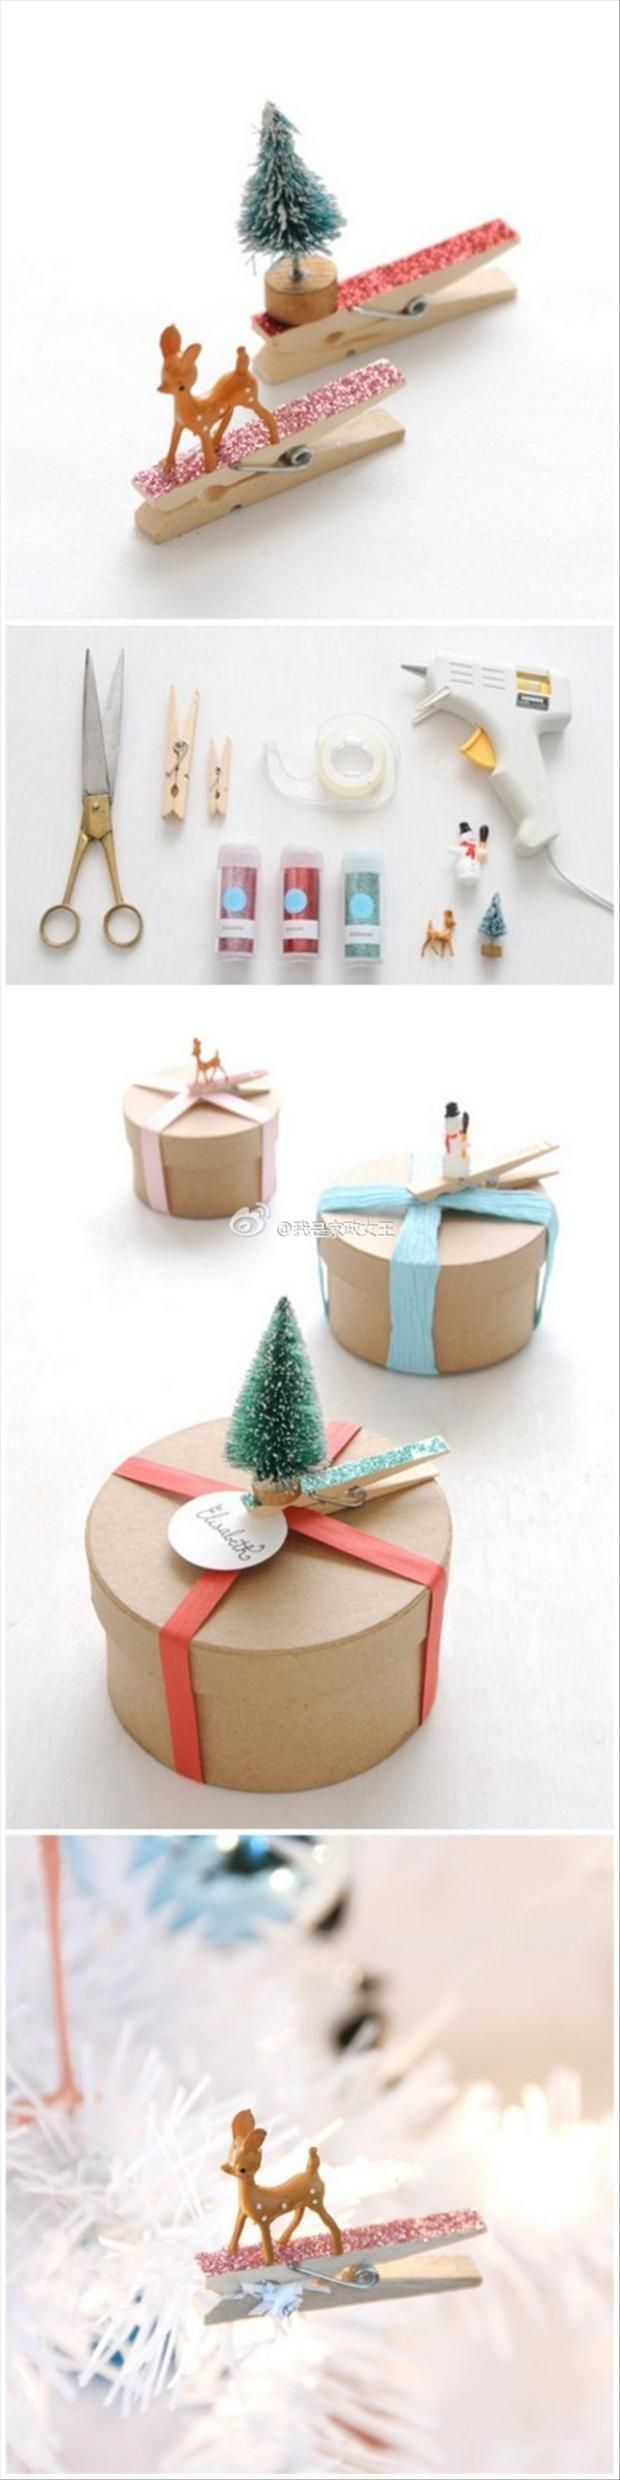 Dump A Day Christmas Crafts - 30 Pics